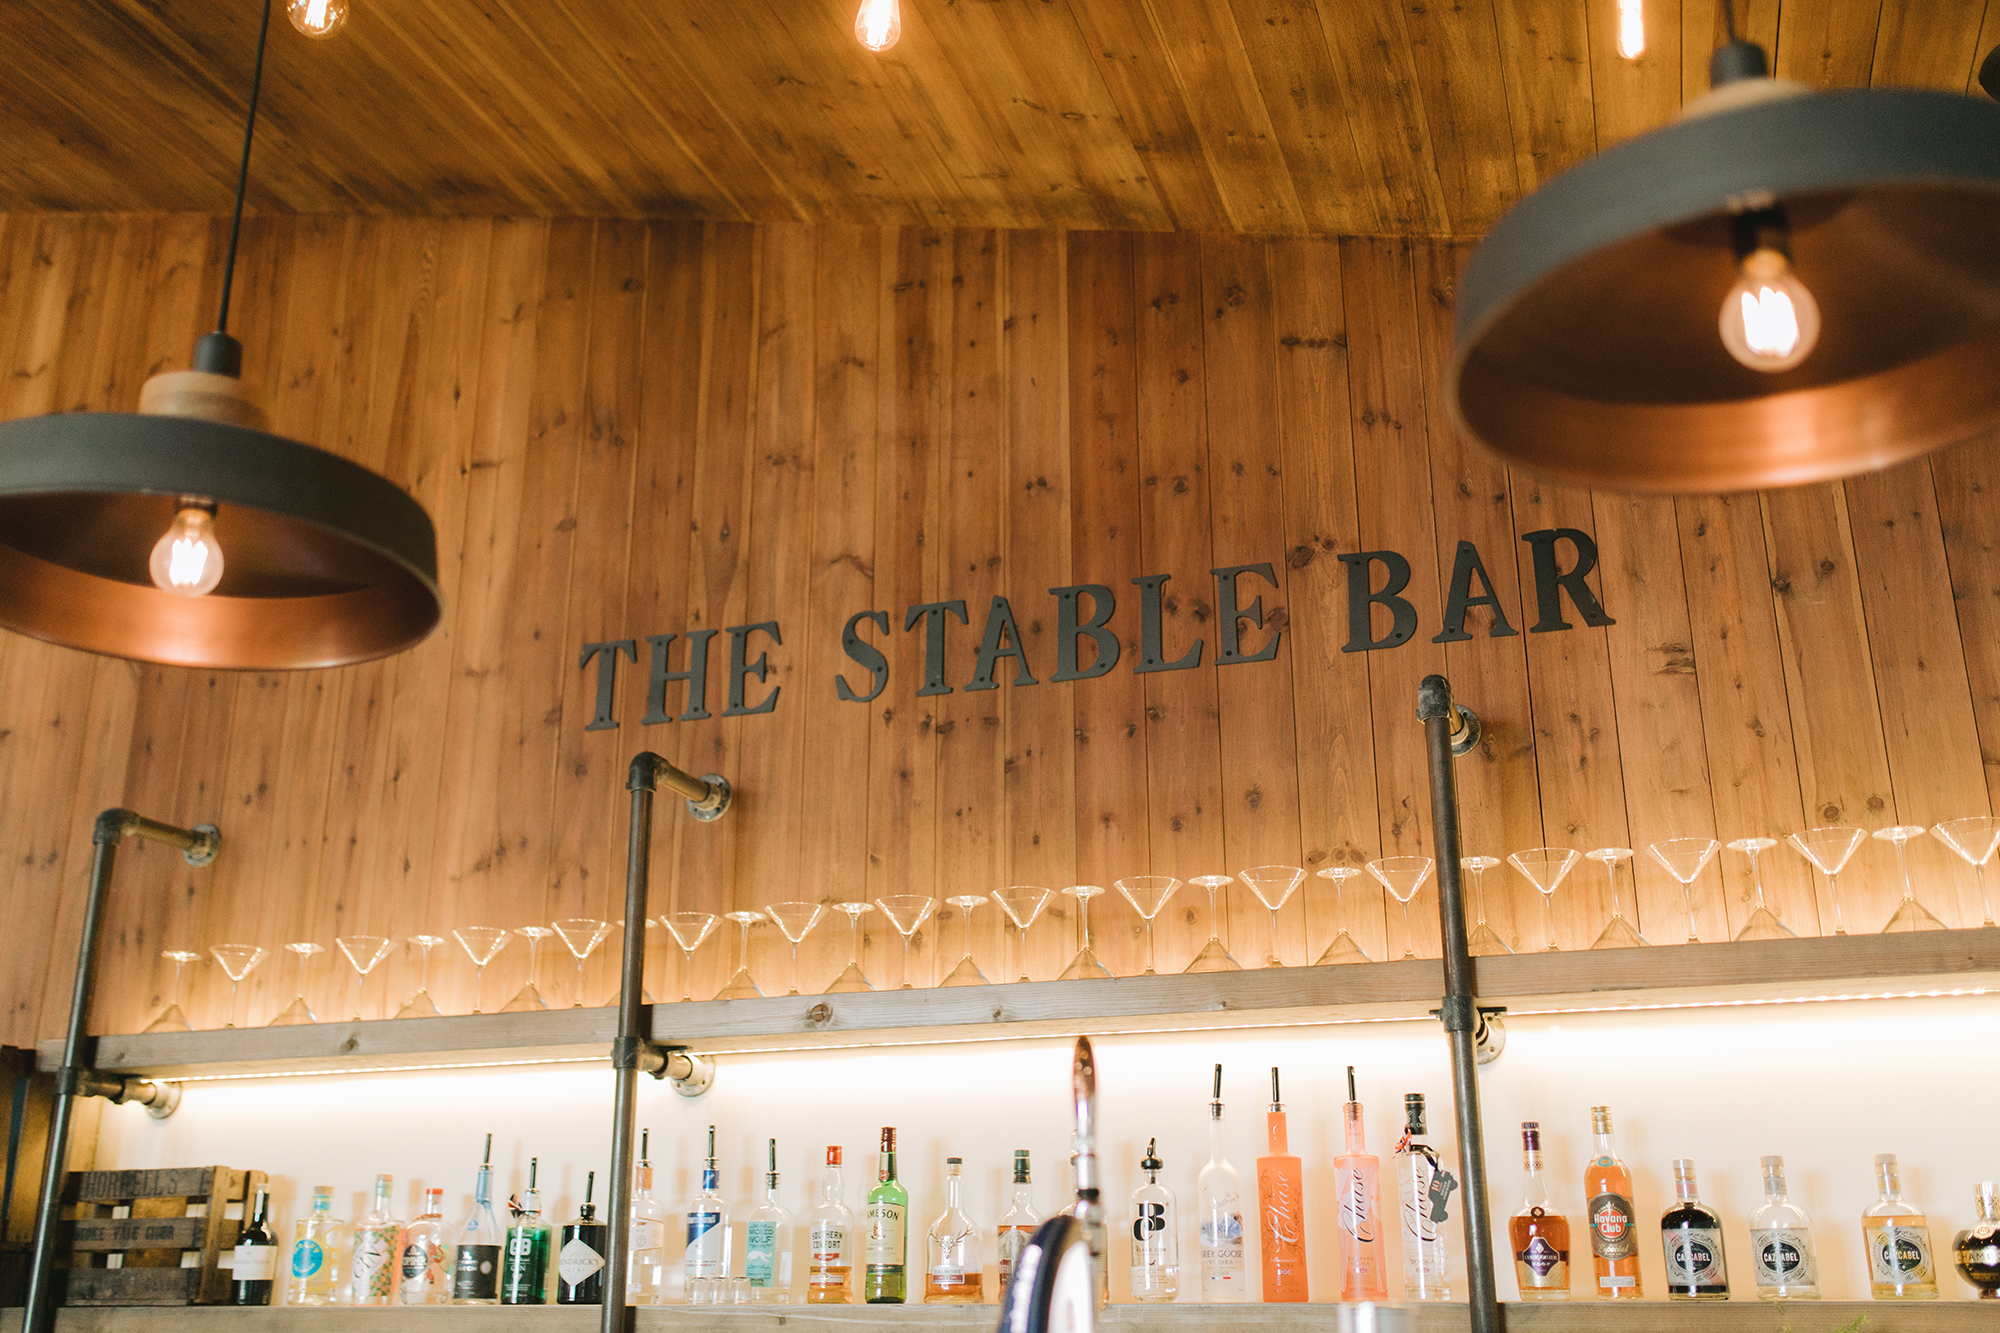 The Stable Barn Bar drinks and glasses display